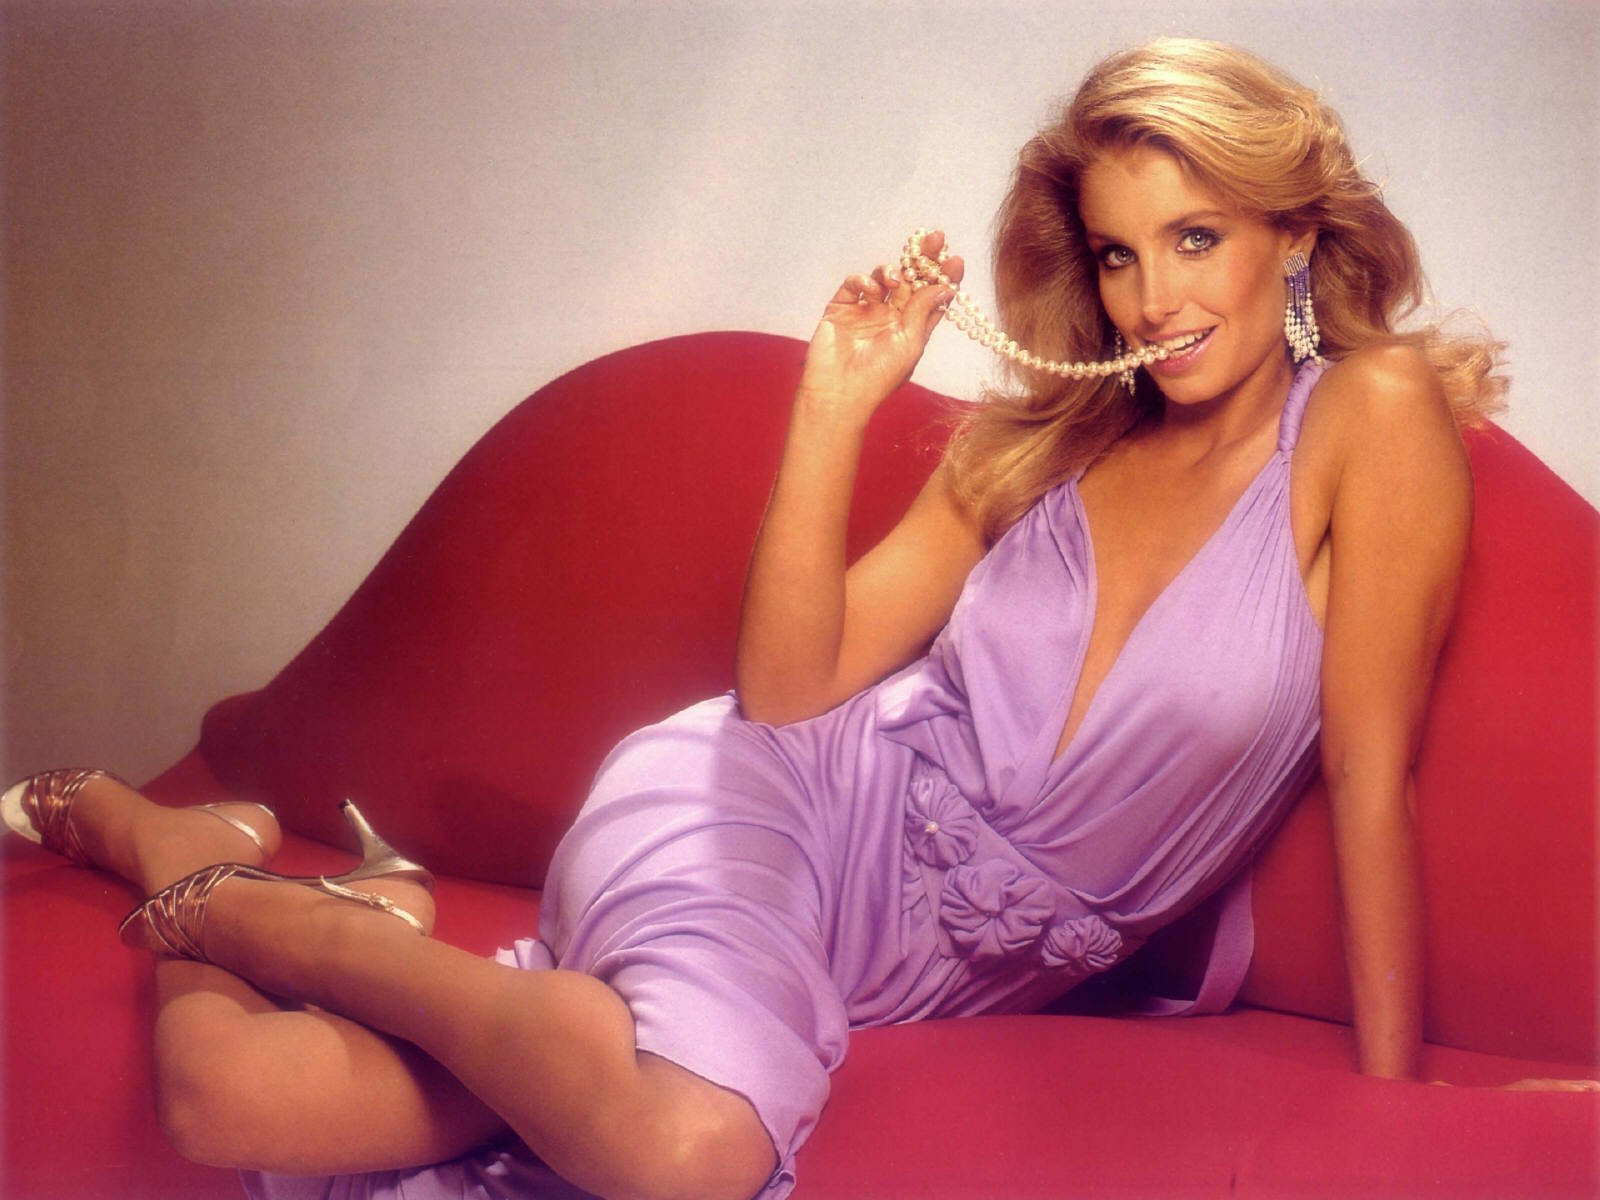 Heather Thomas Wallpaper and Background Image | 1600x1200